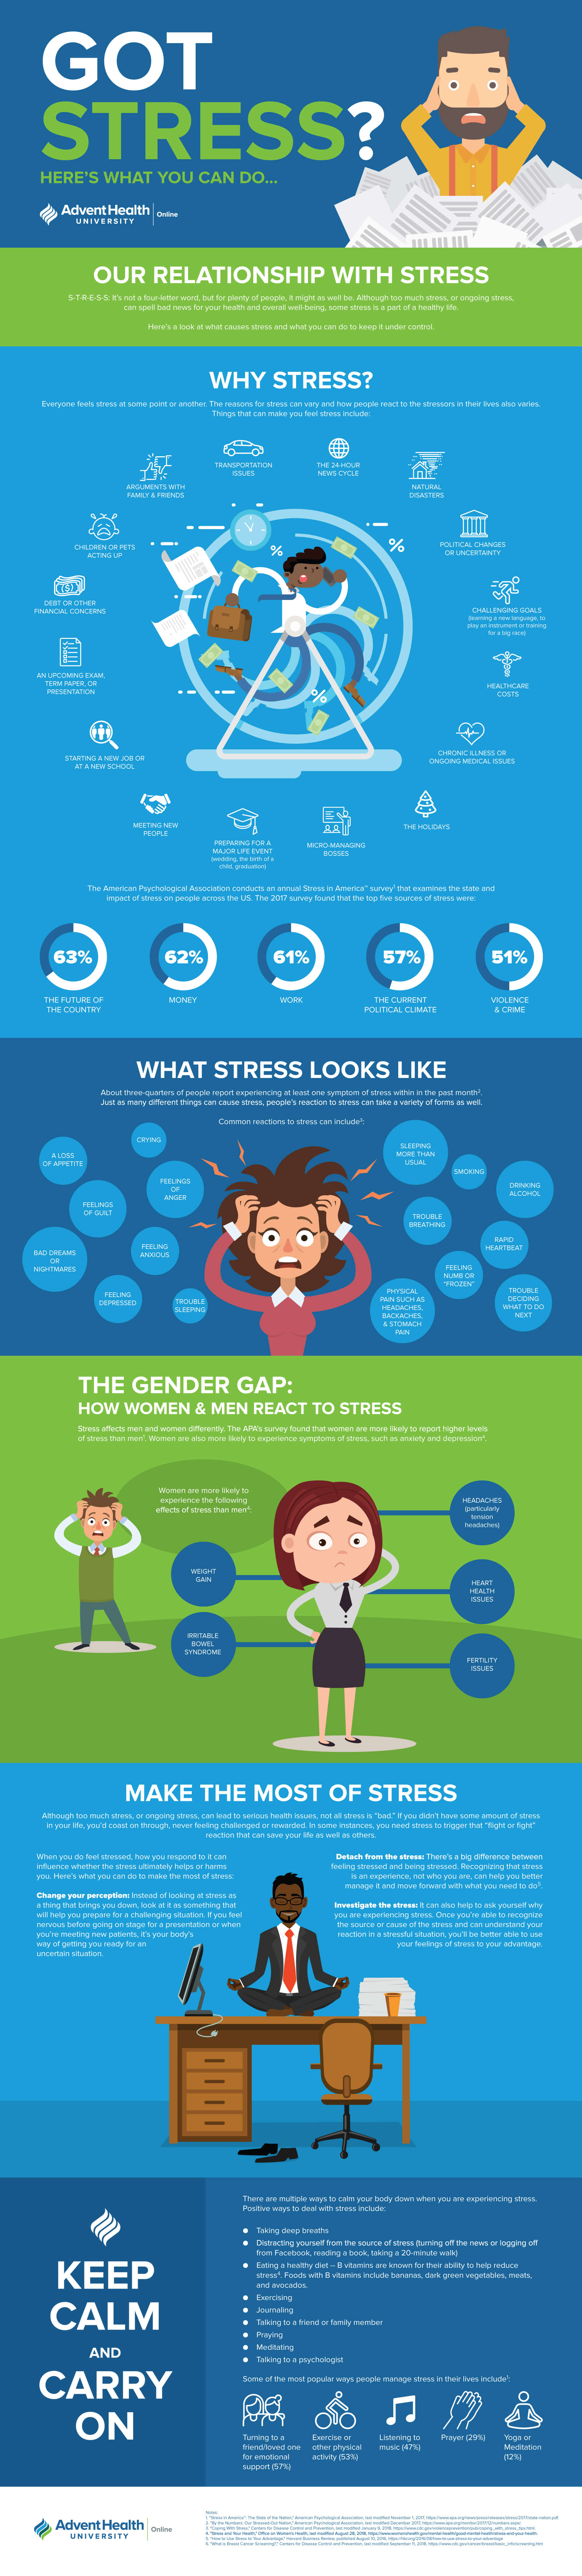 Infographic on Stress